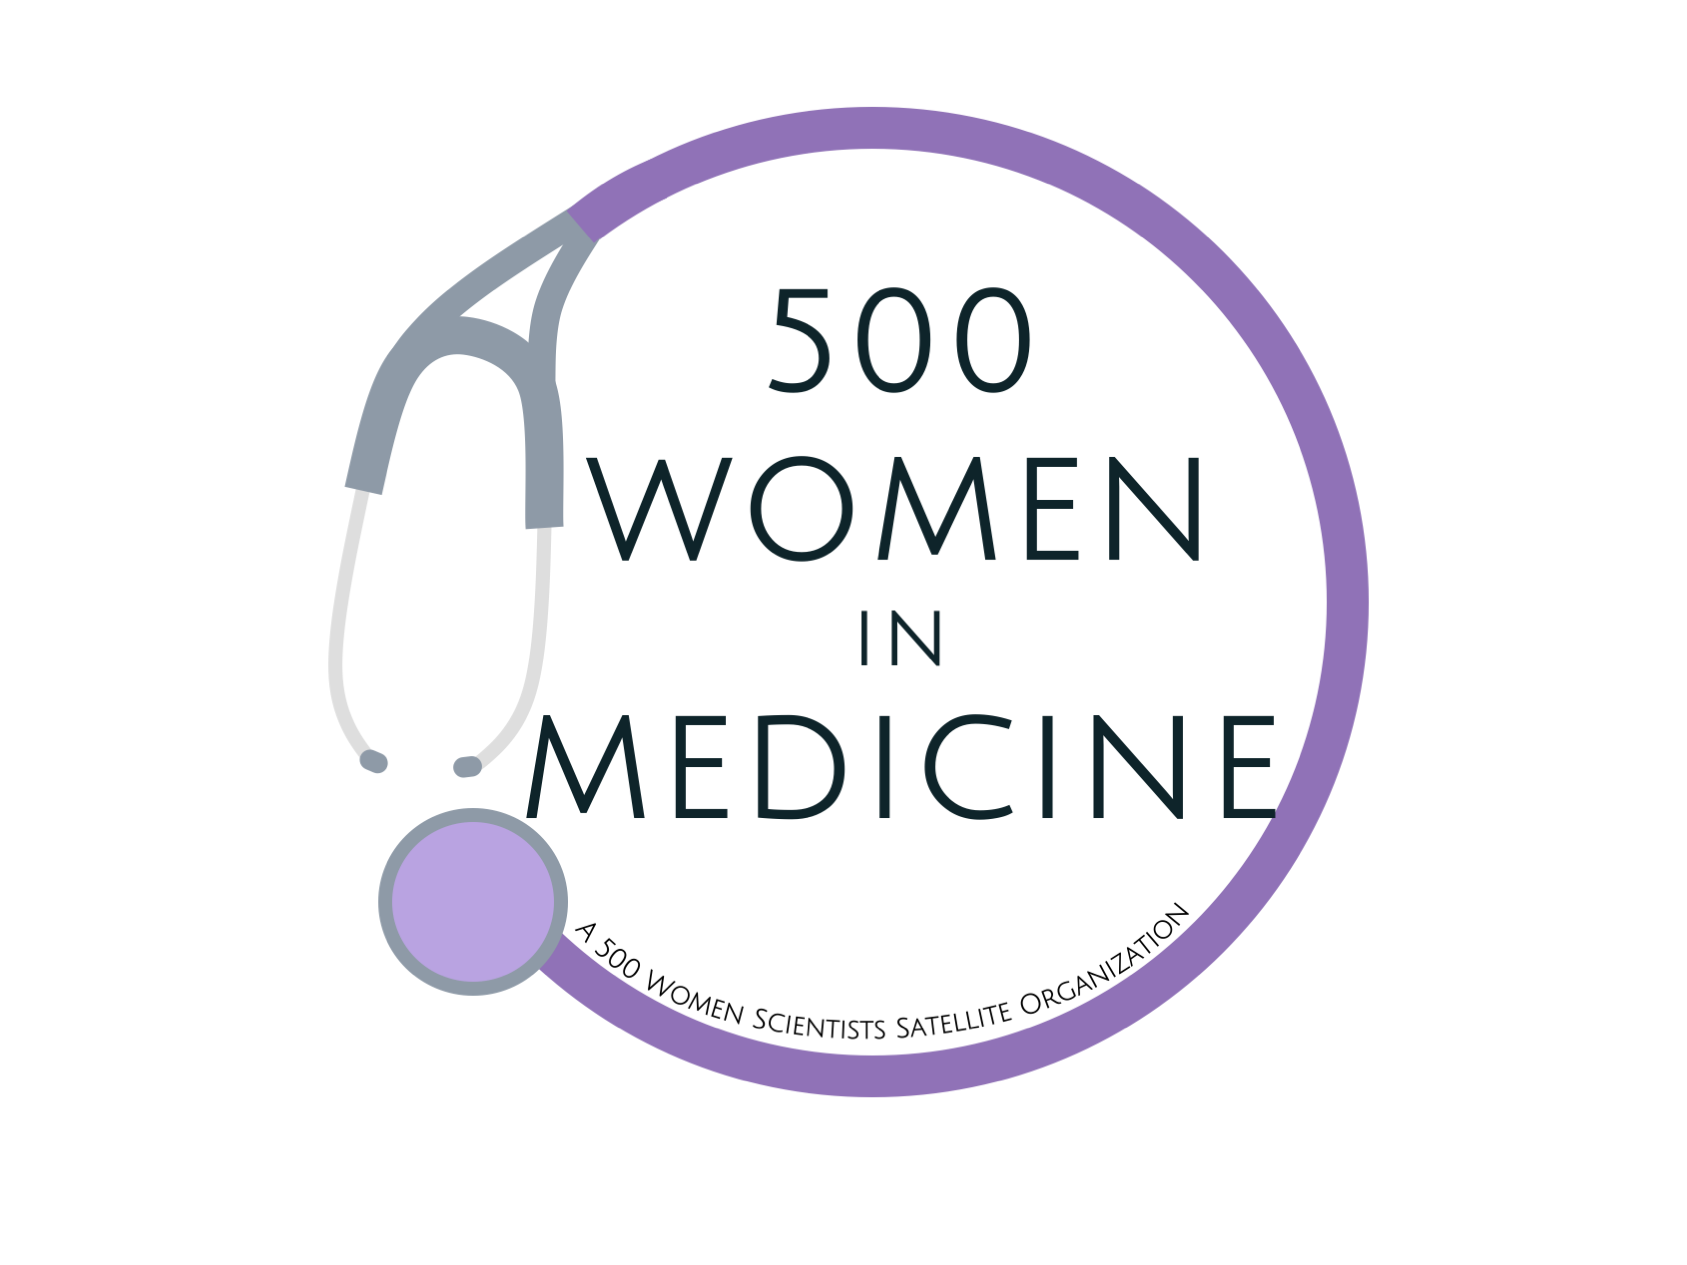 Med students launch '500 Women in Medicine' initiative - Washington University School of Medicine in St. LouisMed students launch '500 Women in Medicine' initiative